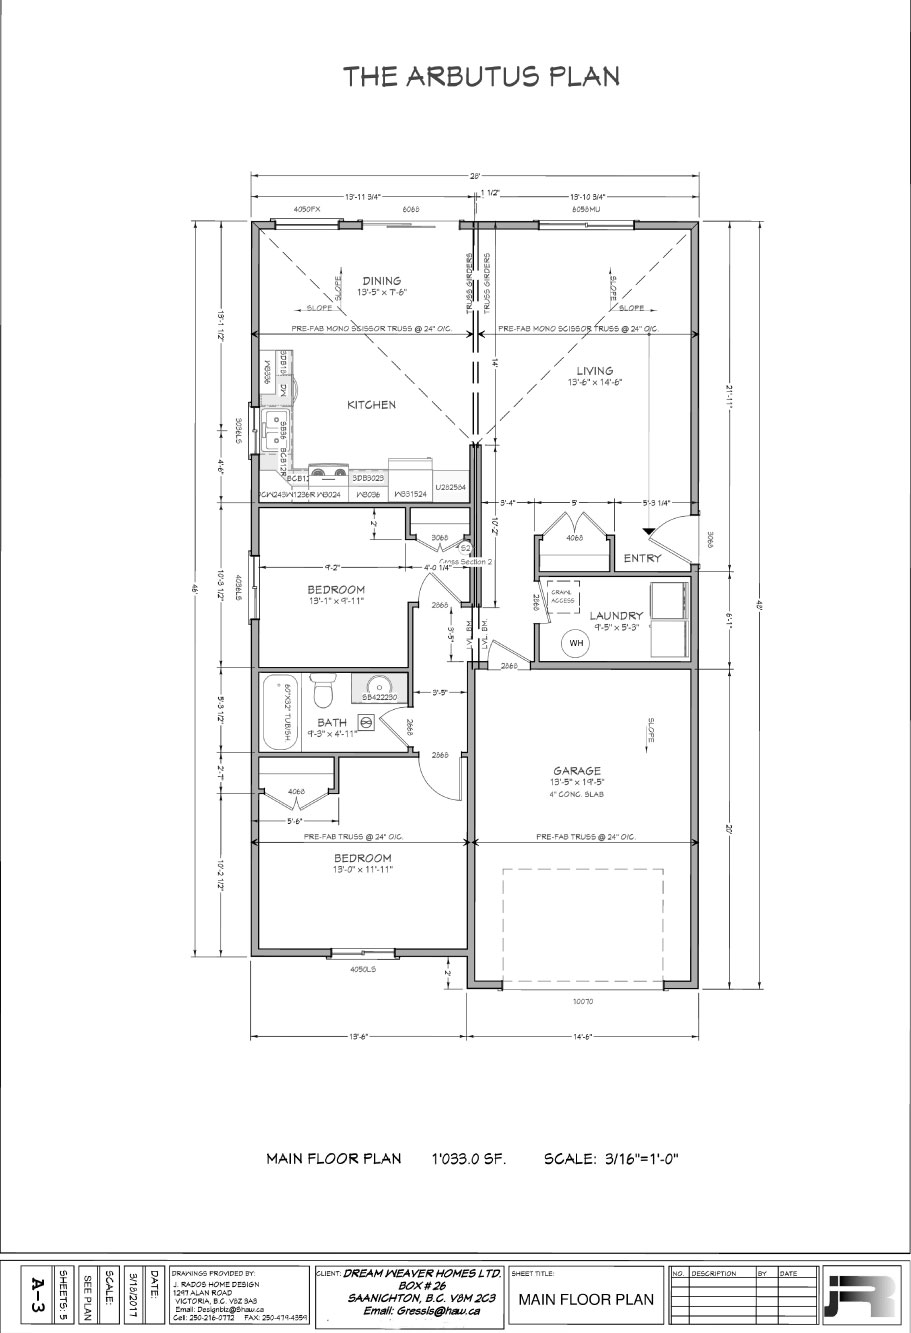 Arbutus - 1033 SQ FT